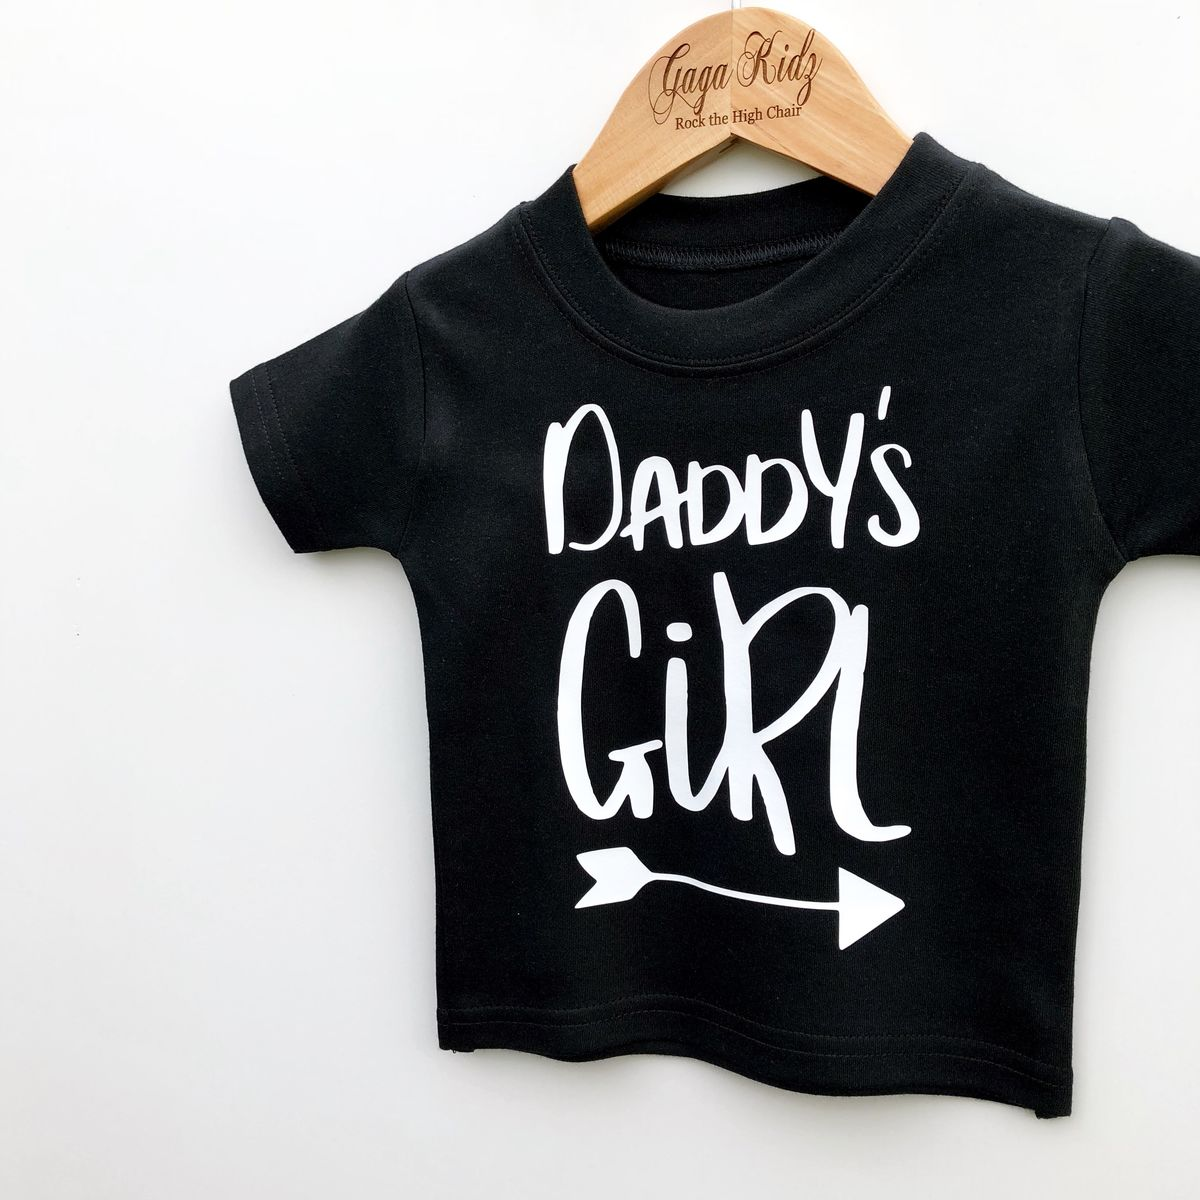 Daddy's Girl Black & White Kids T-Shirts (various sizes) - product images  of